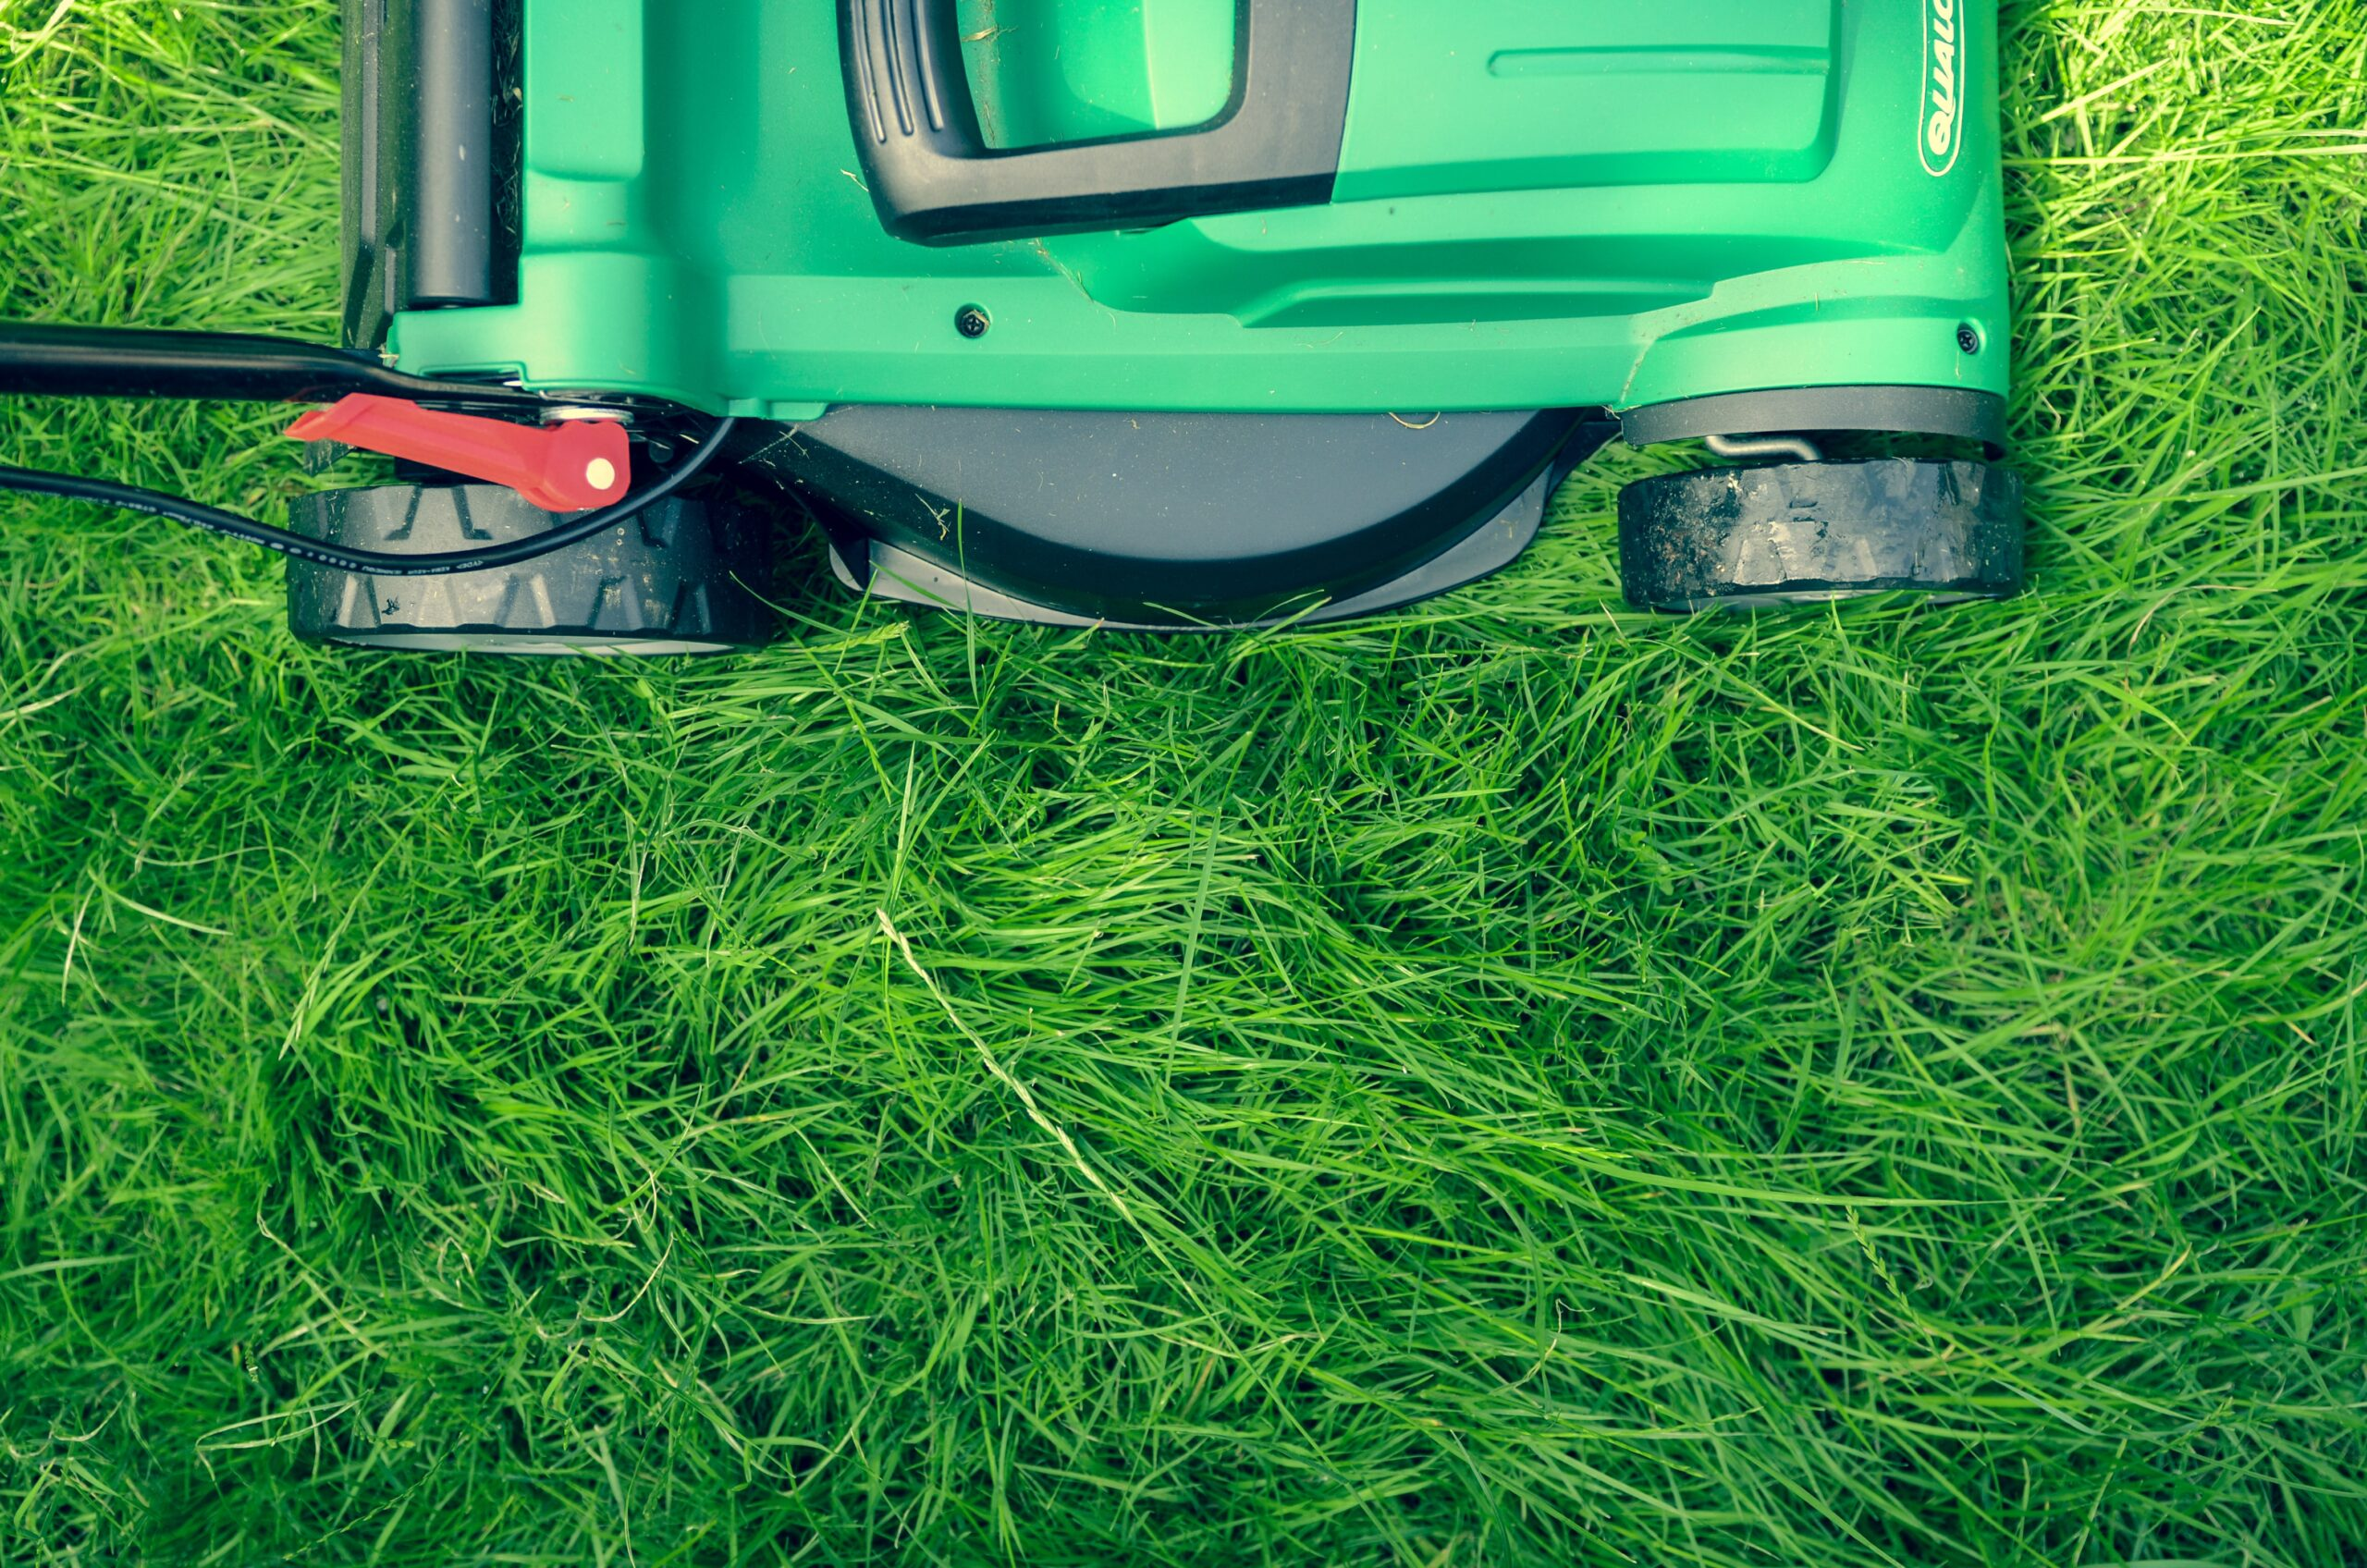 Choose a lawn mower to fit your needs